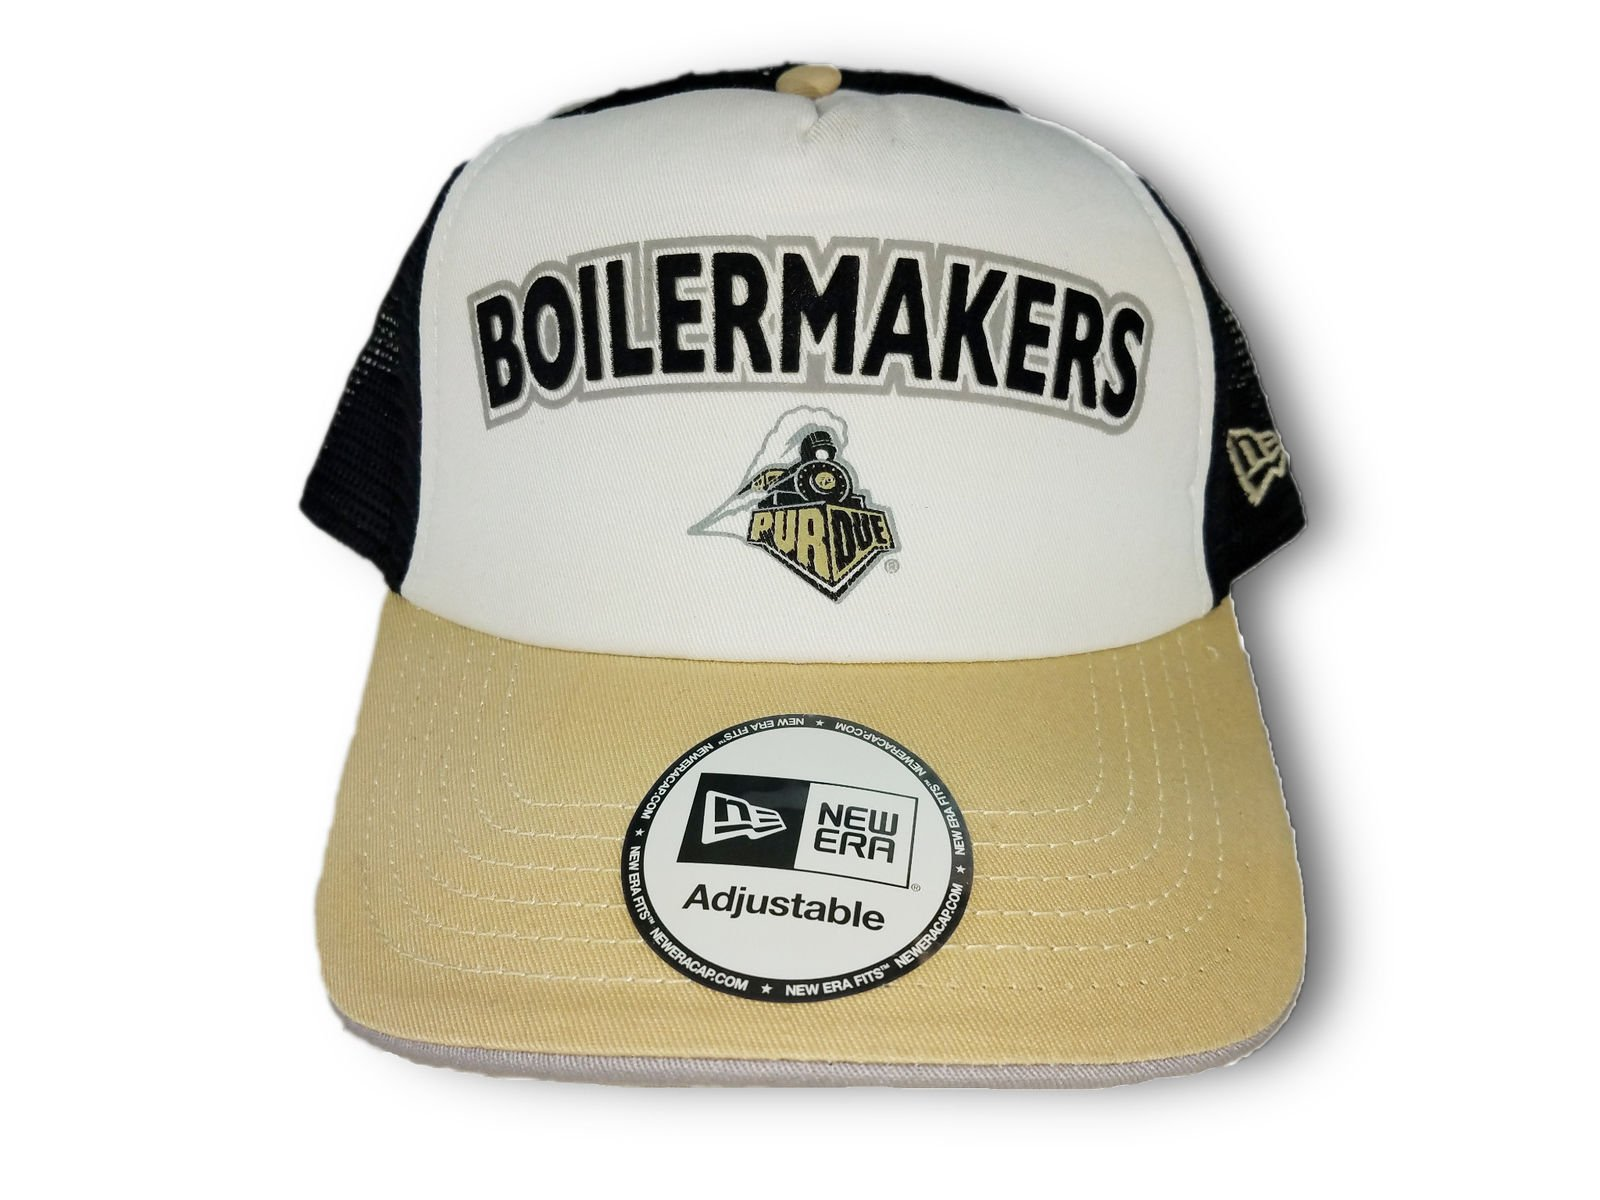 the best attitude 6c19f 645a2 College NCAA Purdue Boilermakers Snapback Baseball Hat Cap Mesh White Old  Gold